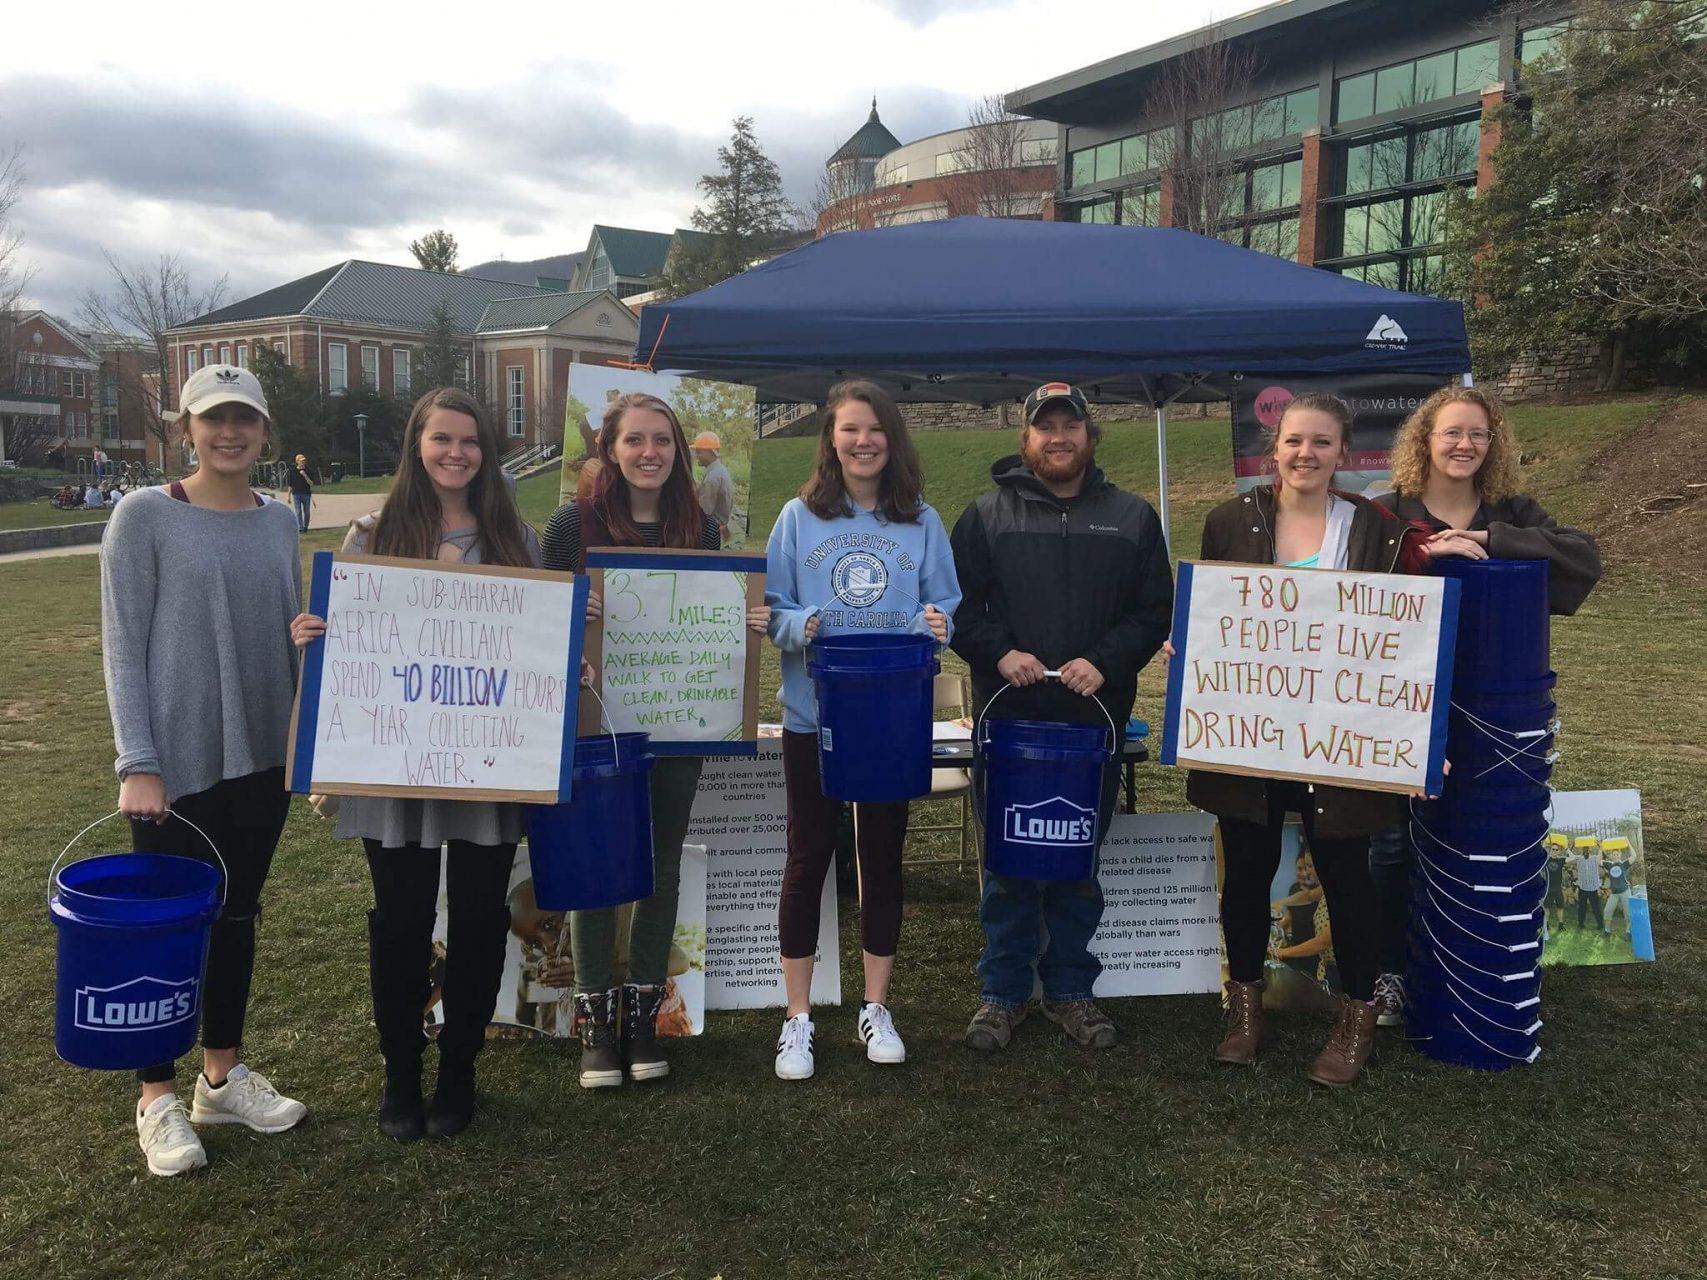 Appalachian State University's Wine to Water club hosts Walk for Water